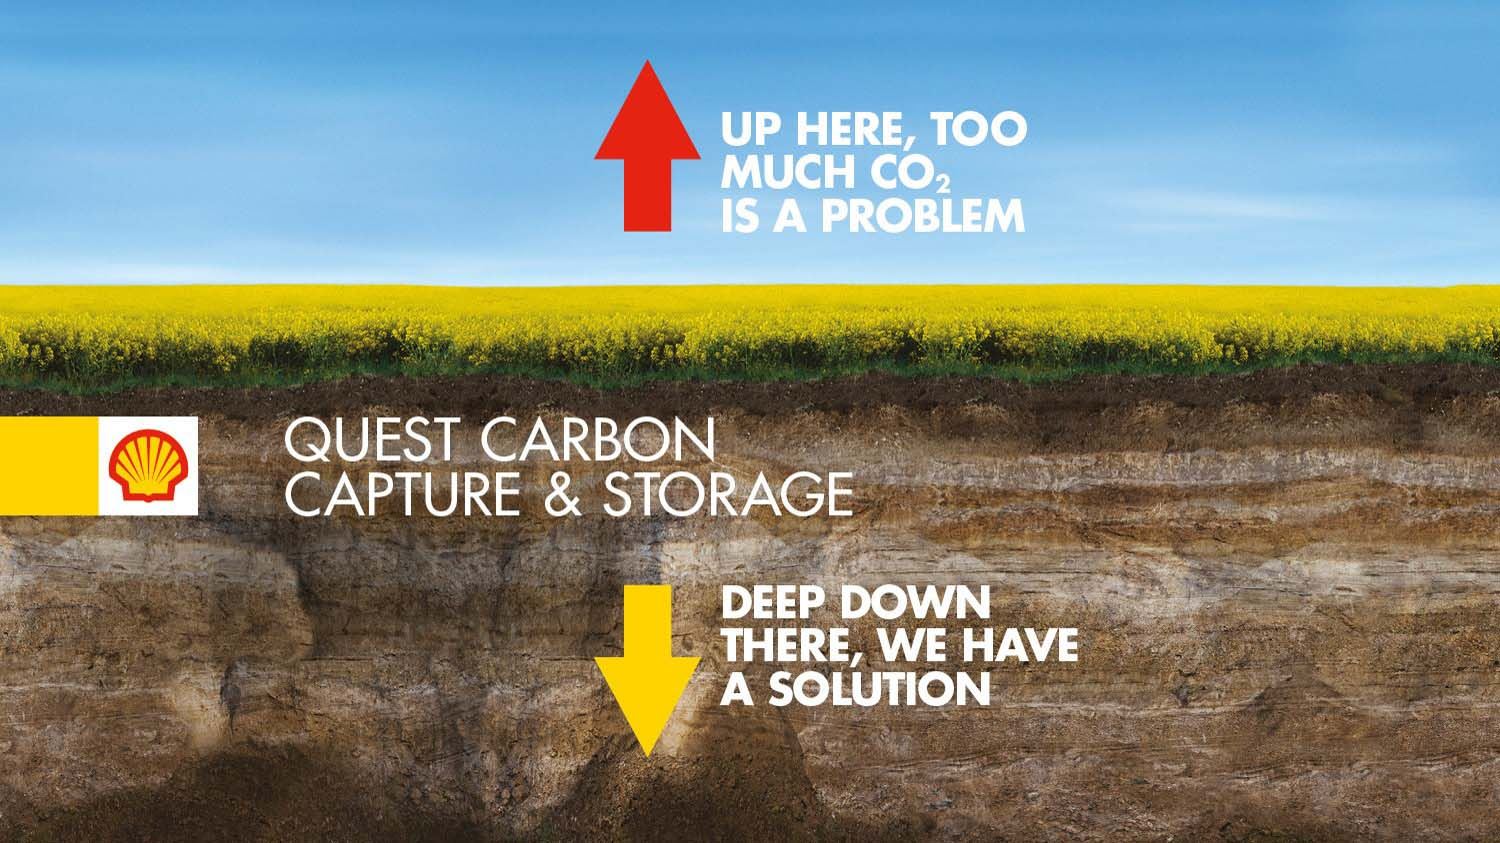 Quest carbon capture and storage